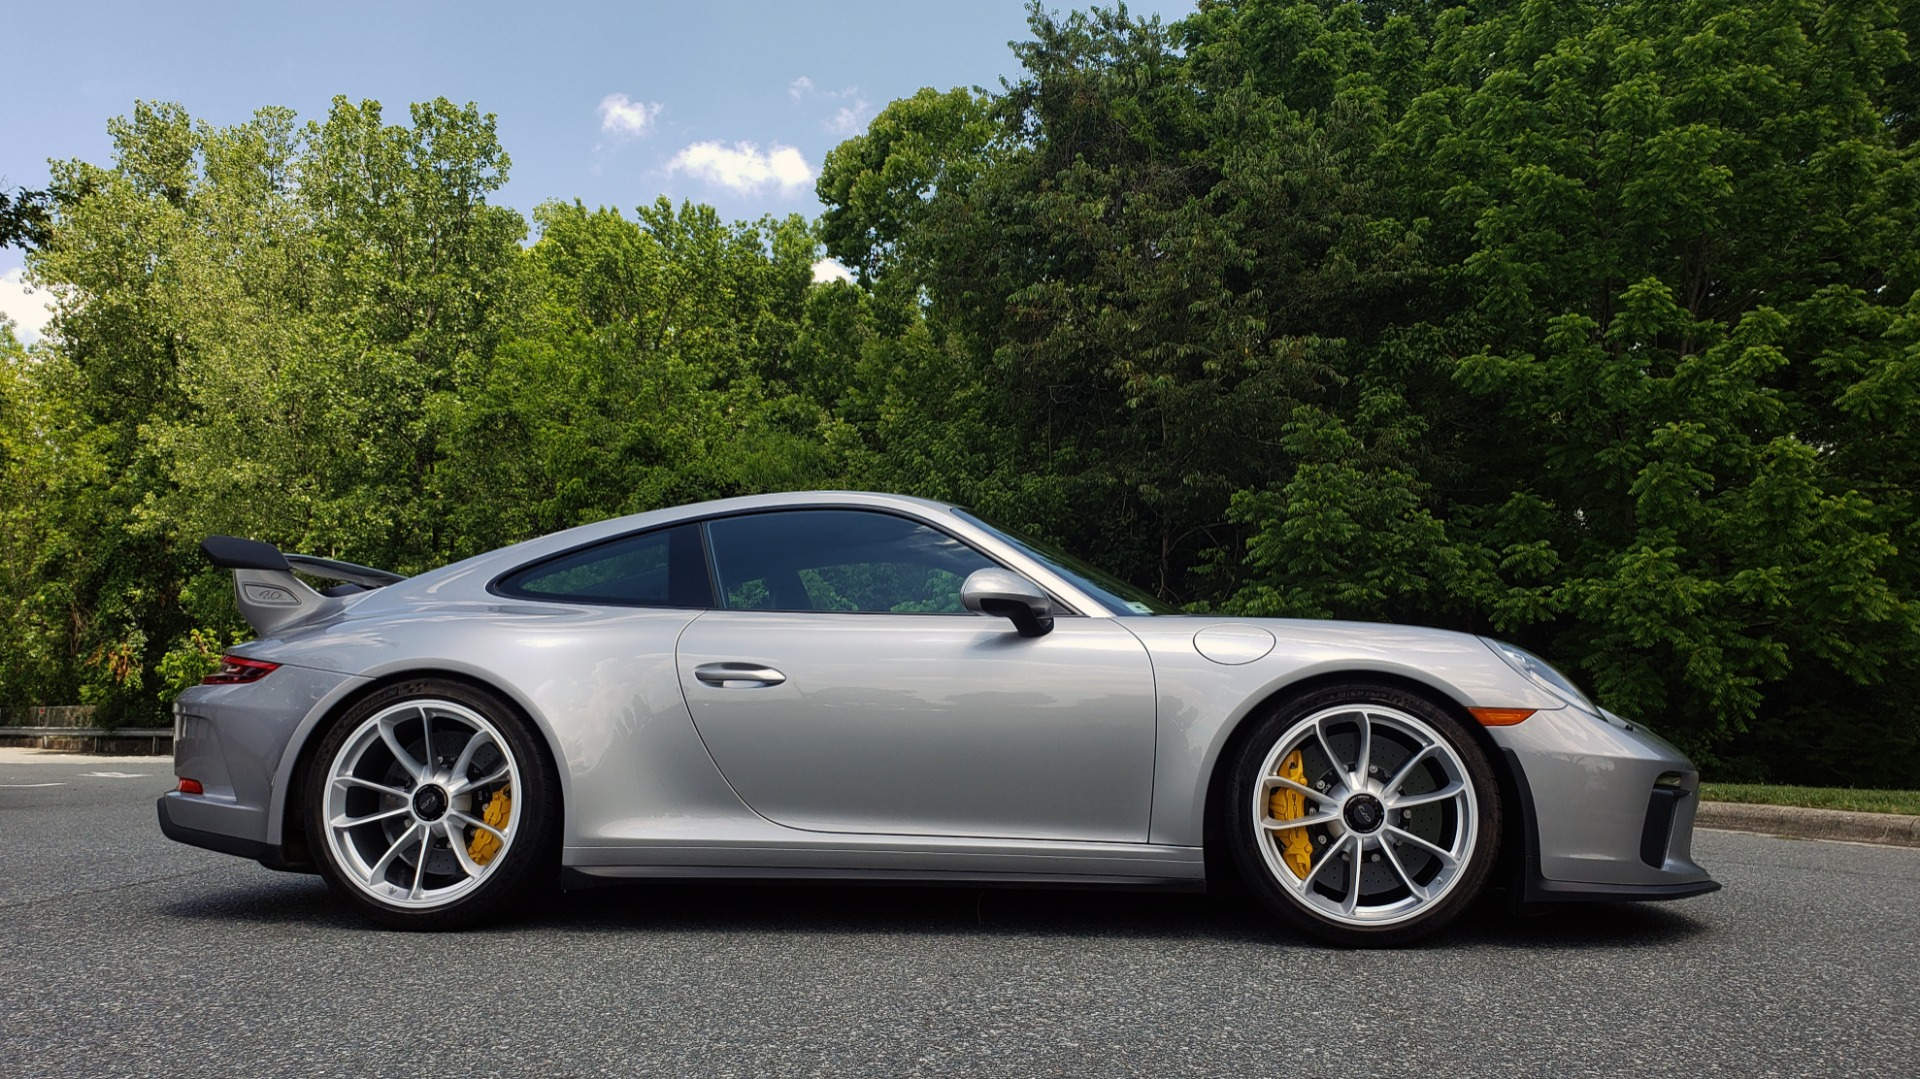 Used 2018 Porsche 911 GT3 4.0L 500HP / 6-SPD MNL / NAV / REARVIEW / PCCB for sale Sold at Formula Imports in Charlotte NC 28227 5